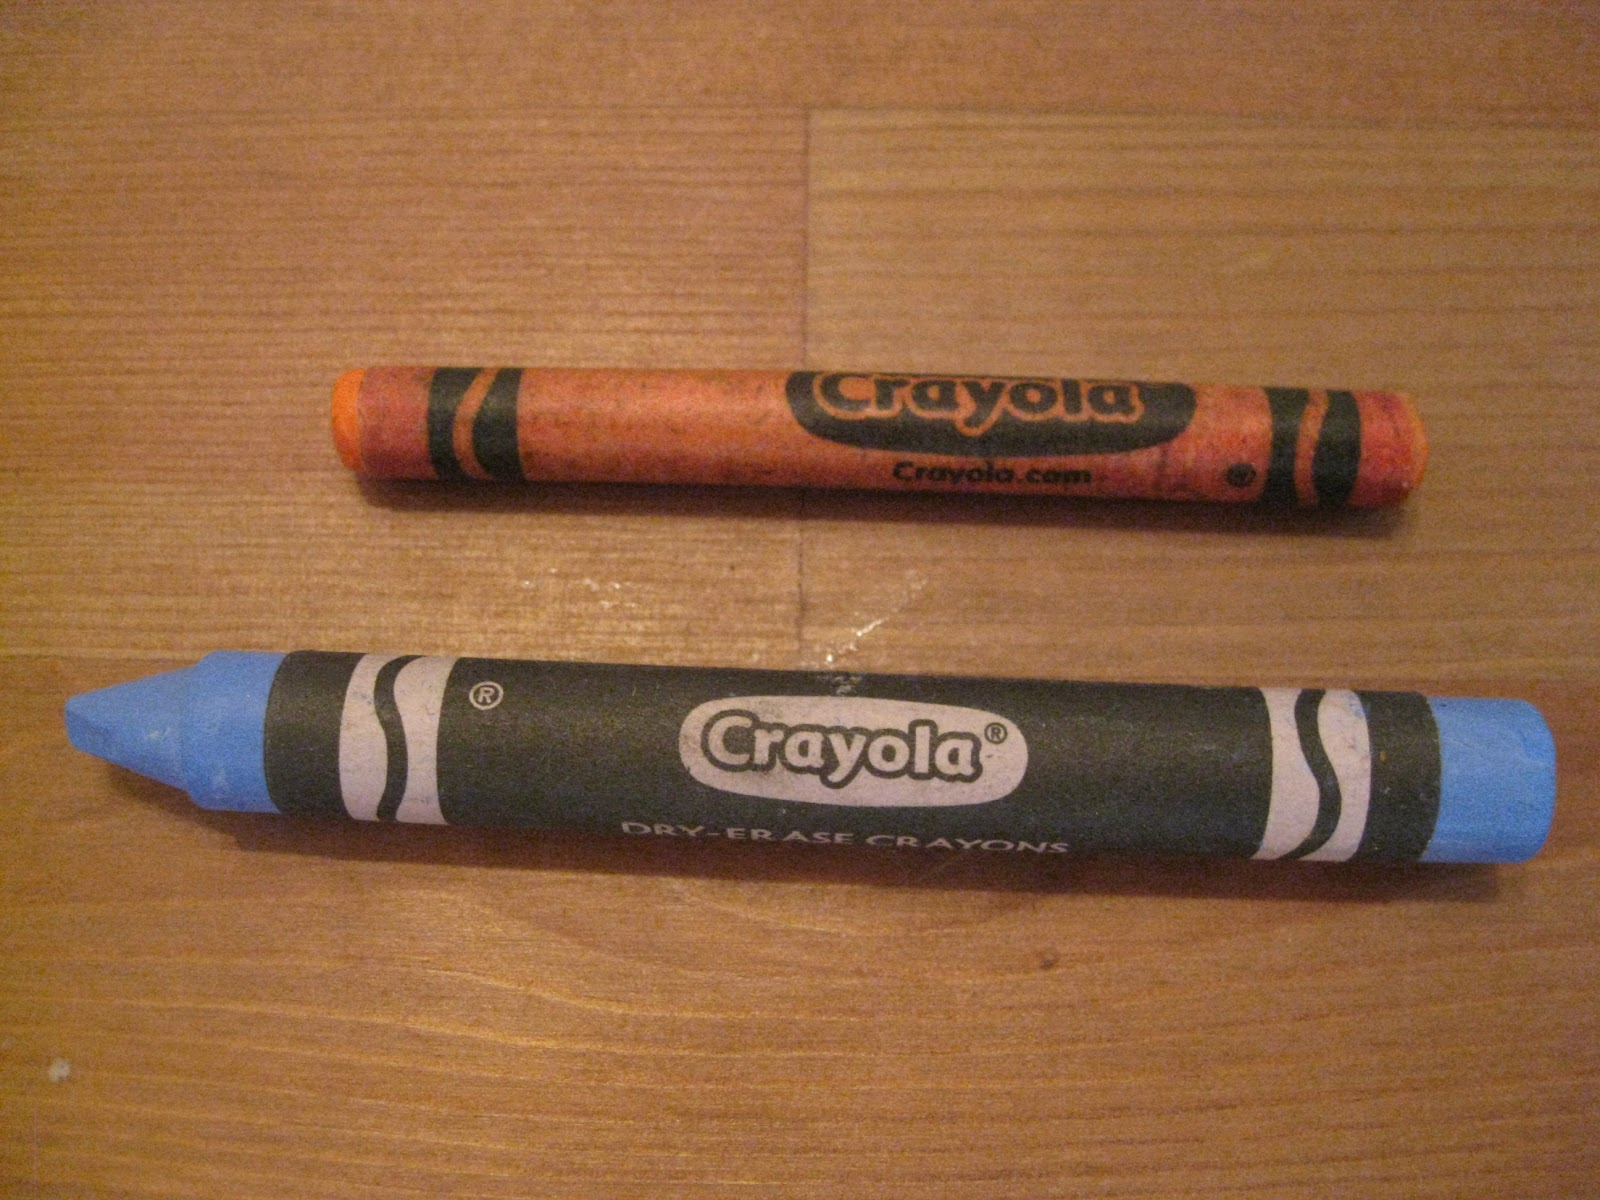 here are a few pictures of the dry erase crayons in action